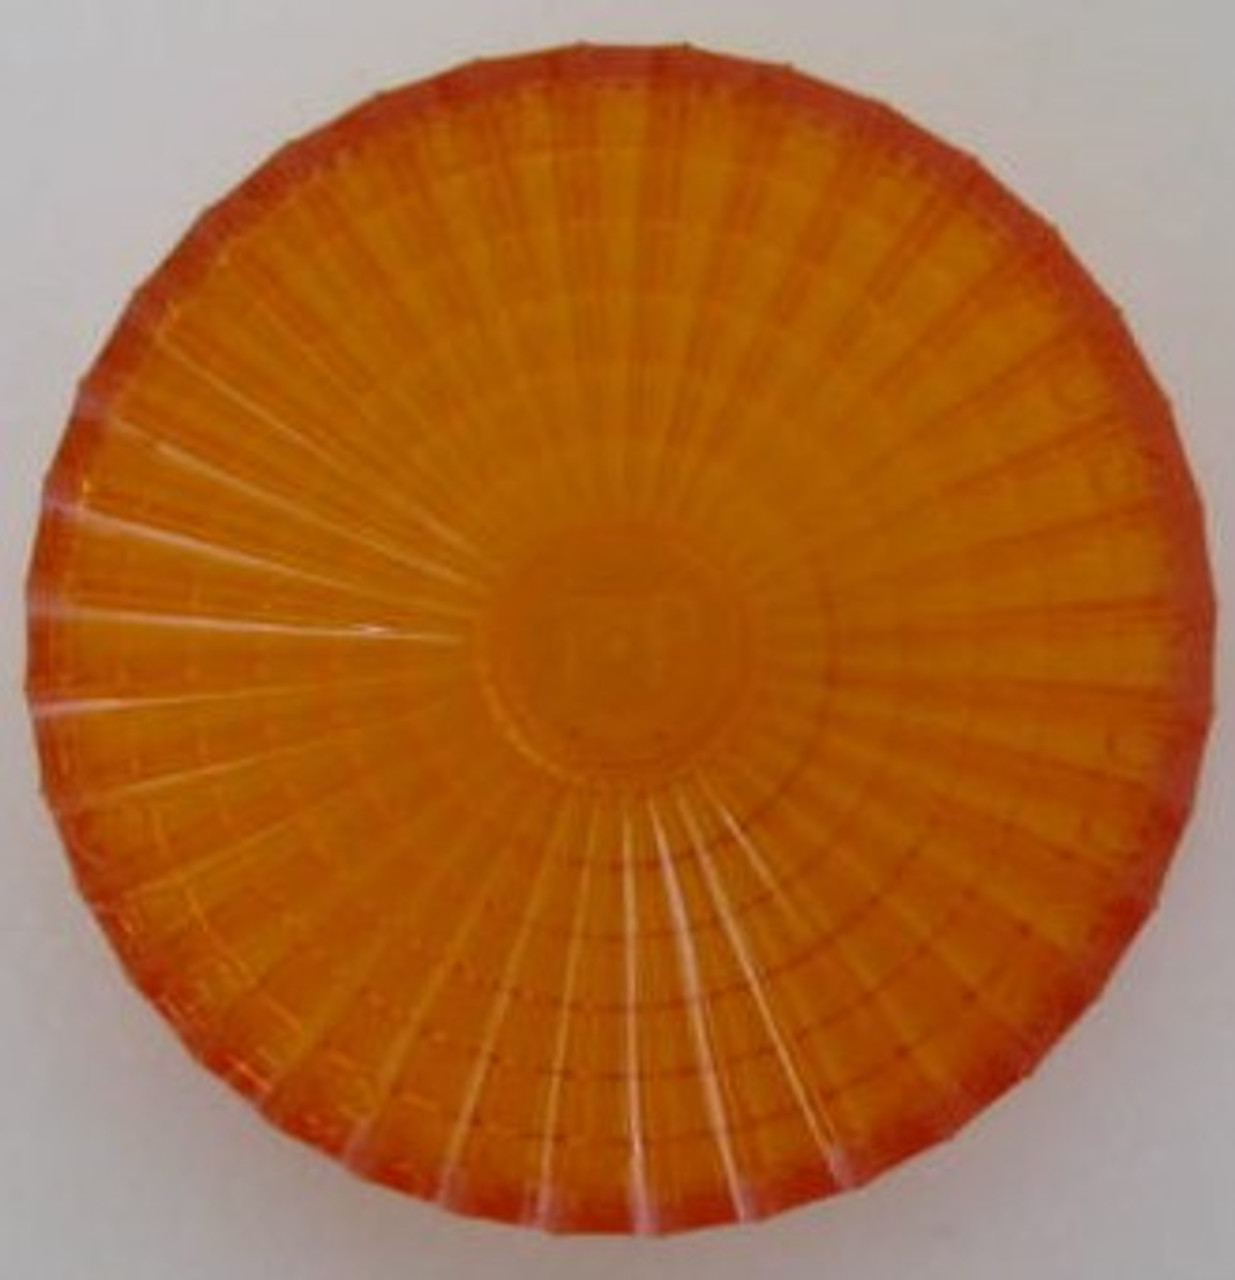 Amber Starburst Clearance Light (Lens Only) (LT425)